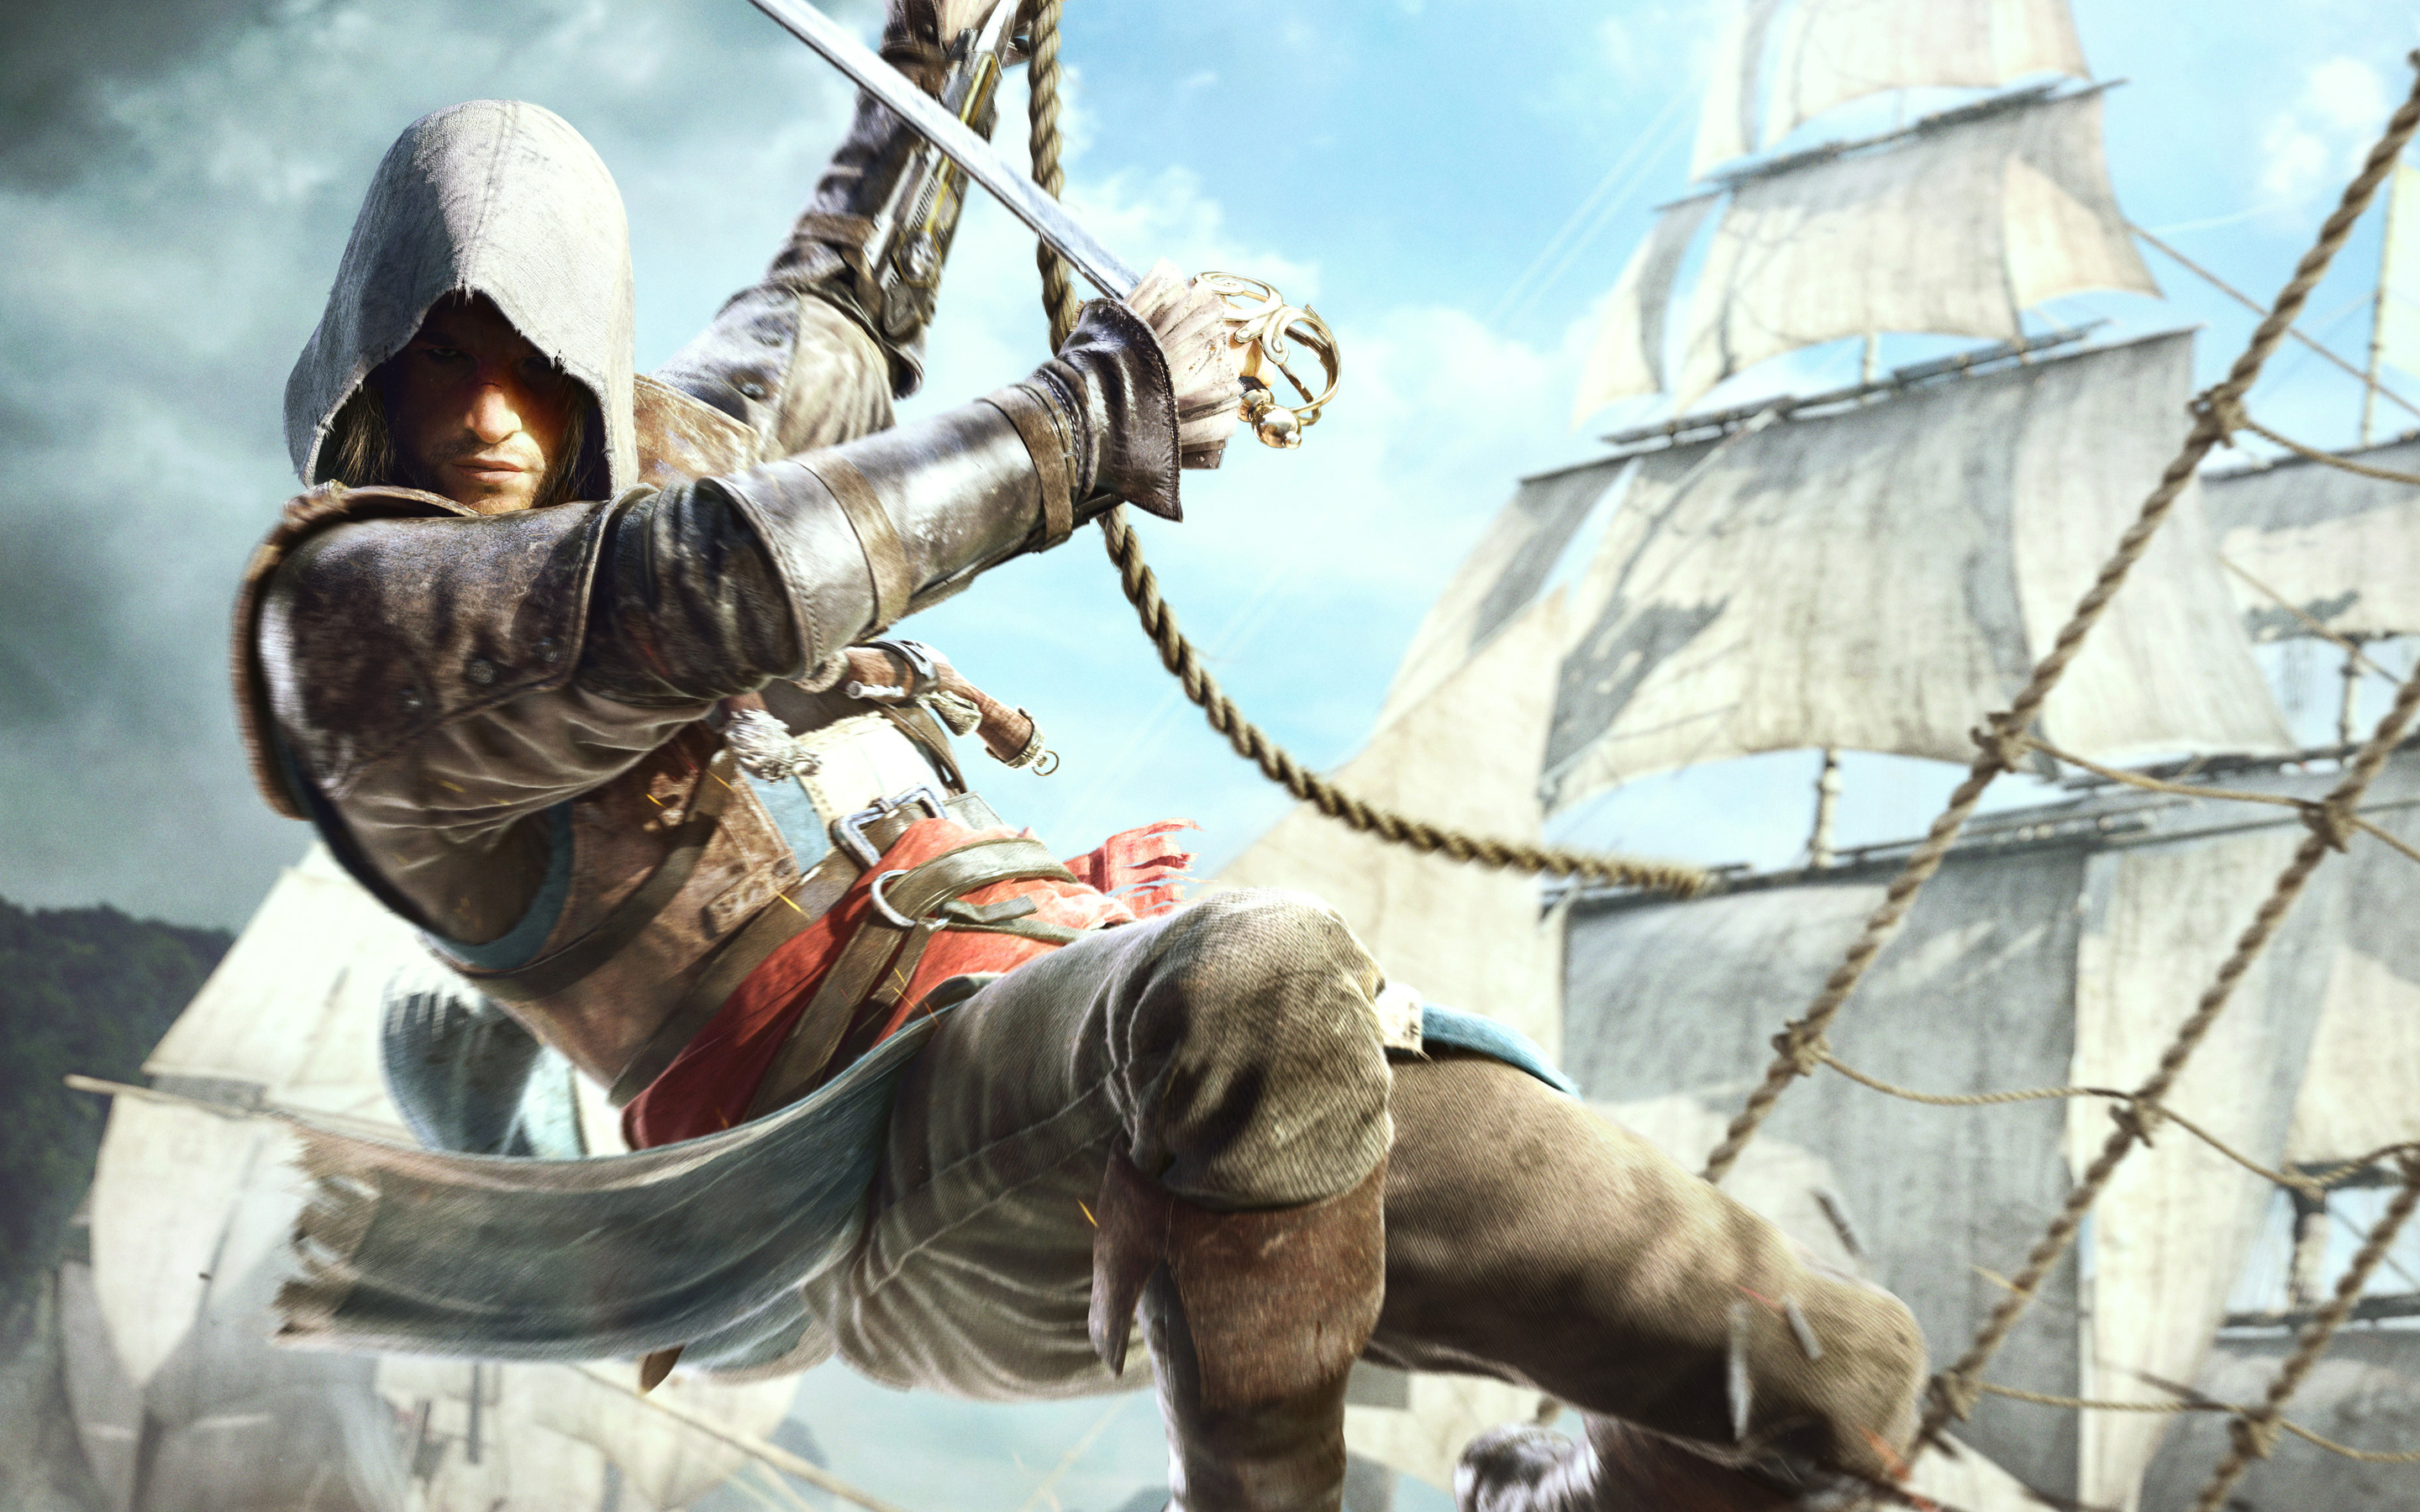 Edward Kenway in Assassin's Creed 4 299.26 Kb